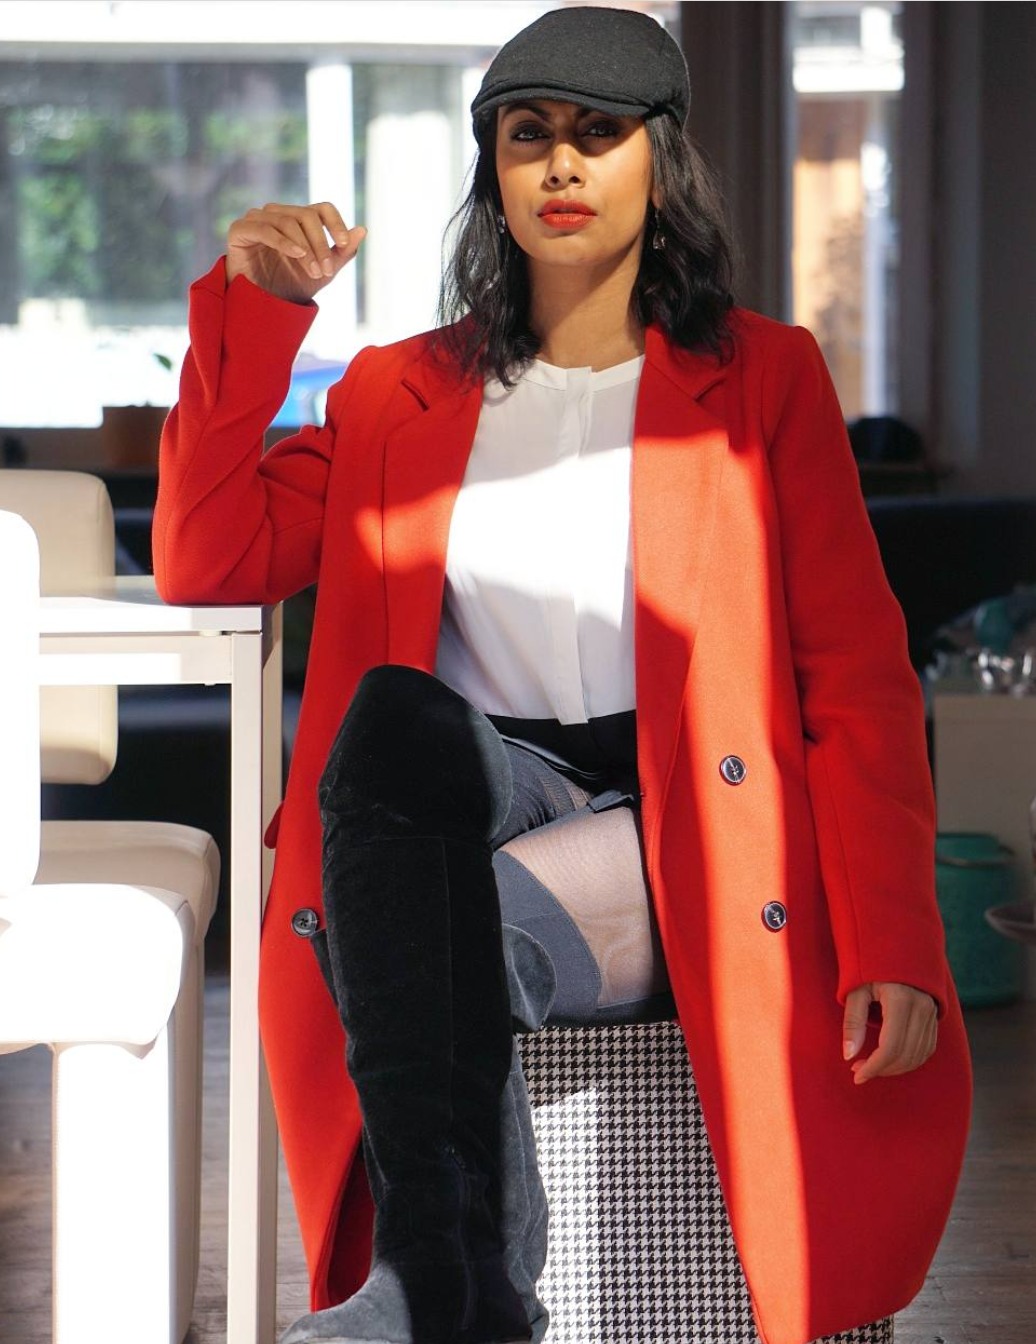 OOTD: Another oversized coat